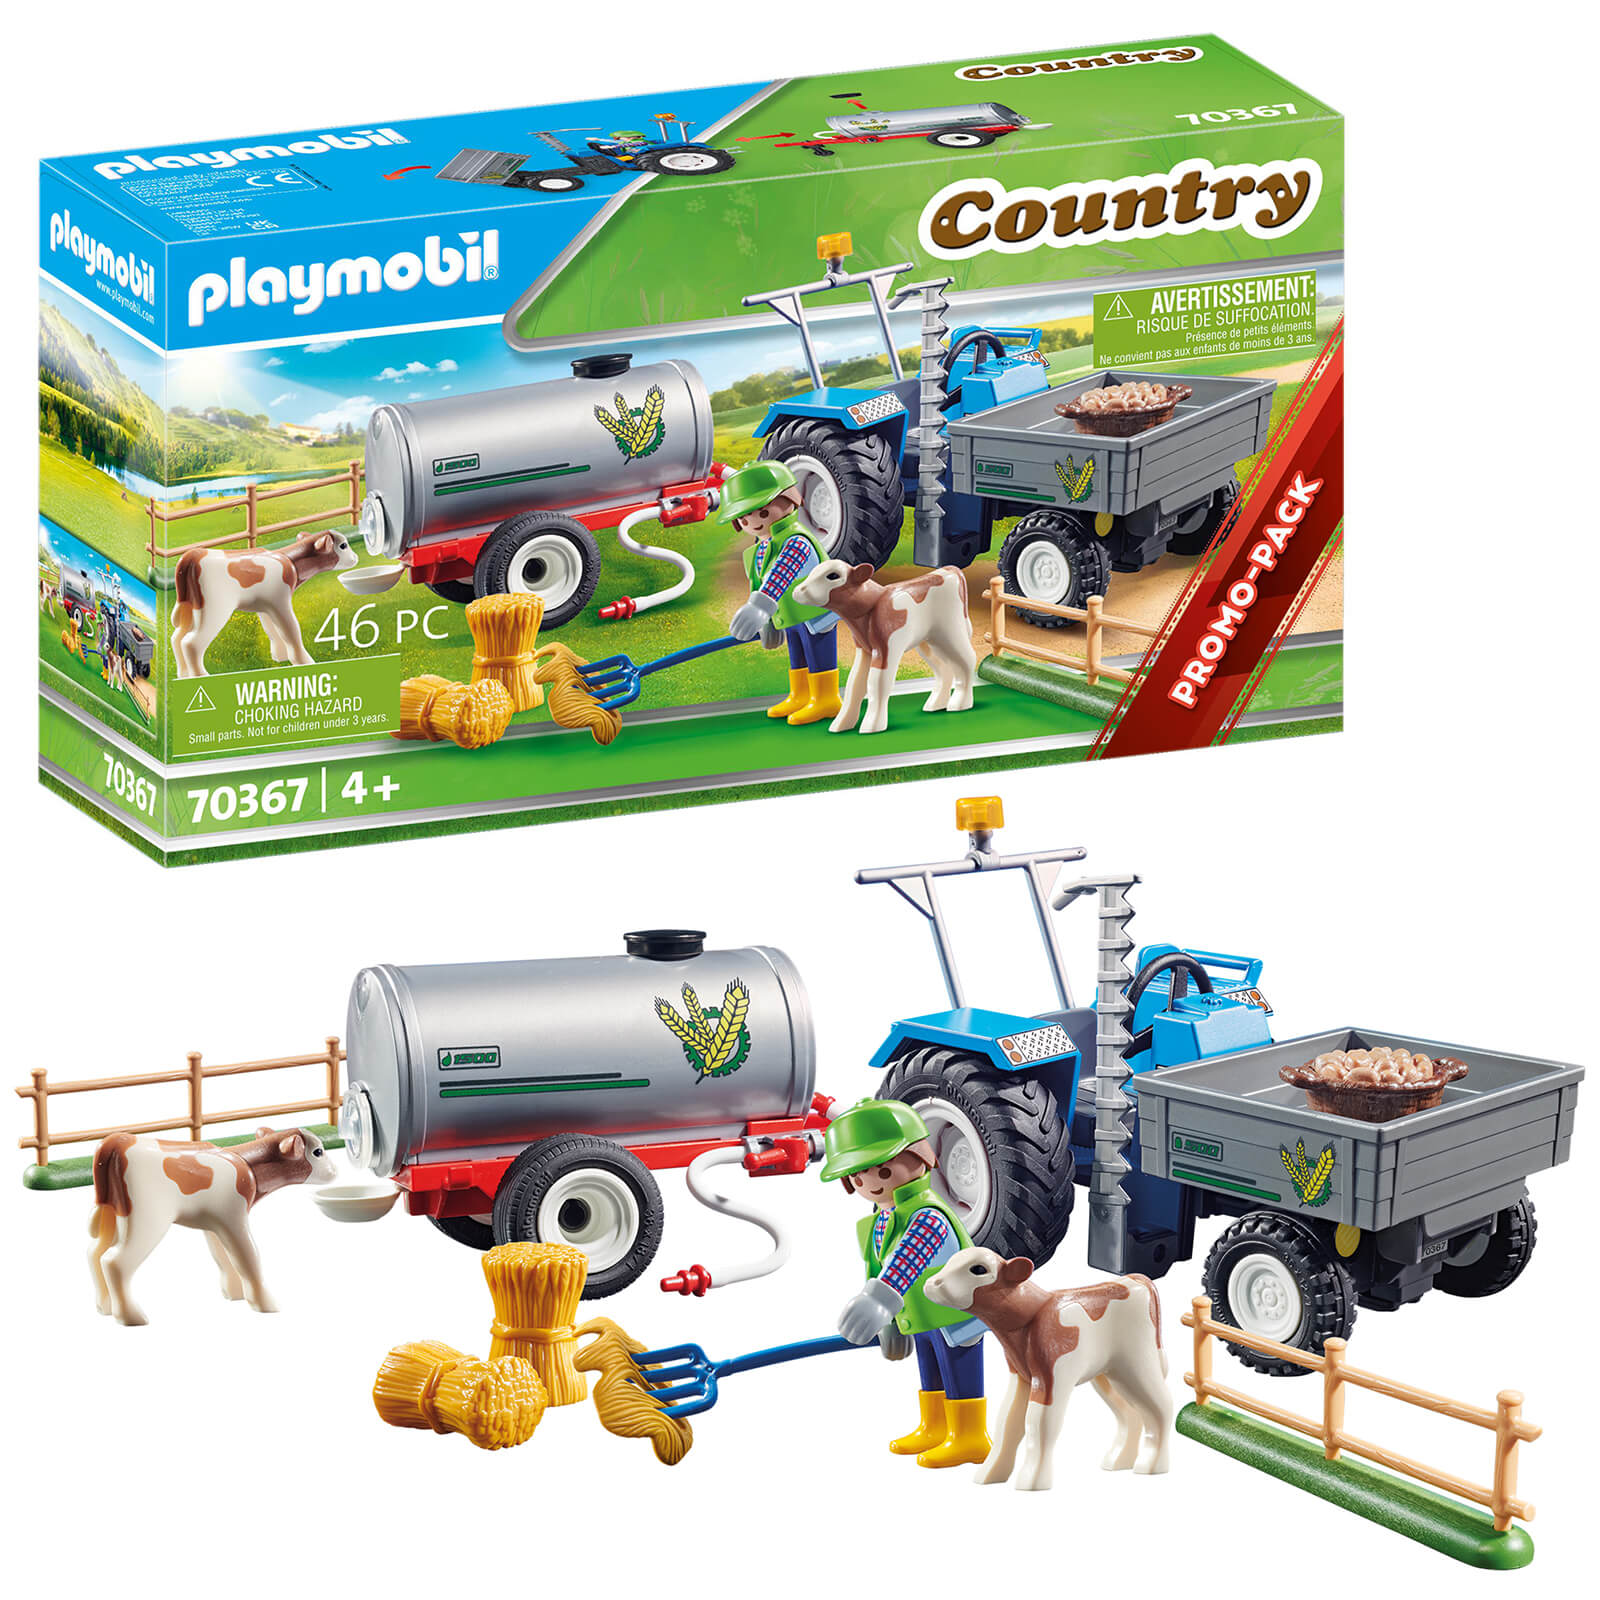 Playmobil Country Promo Loading Tractor With Water Tank (70367)